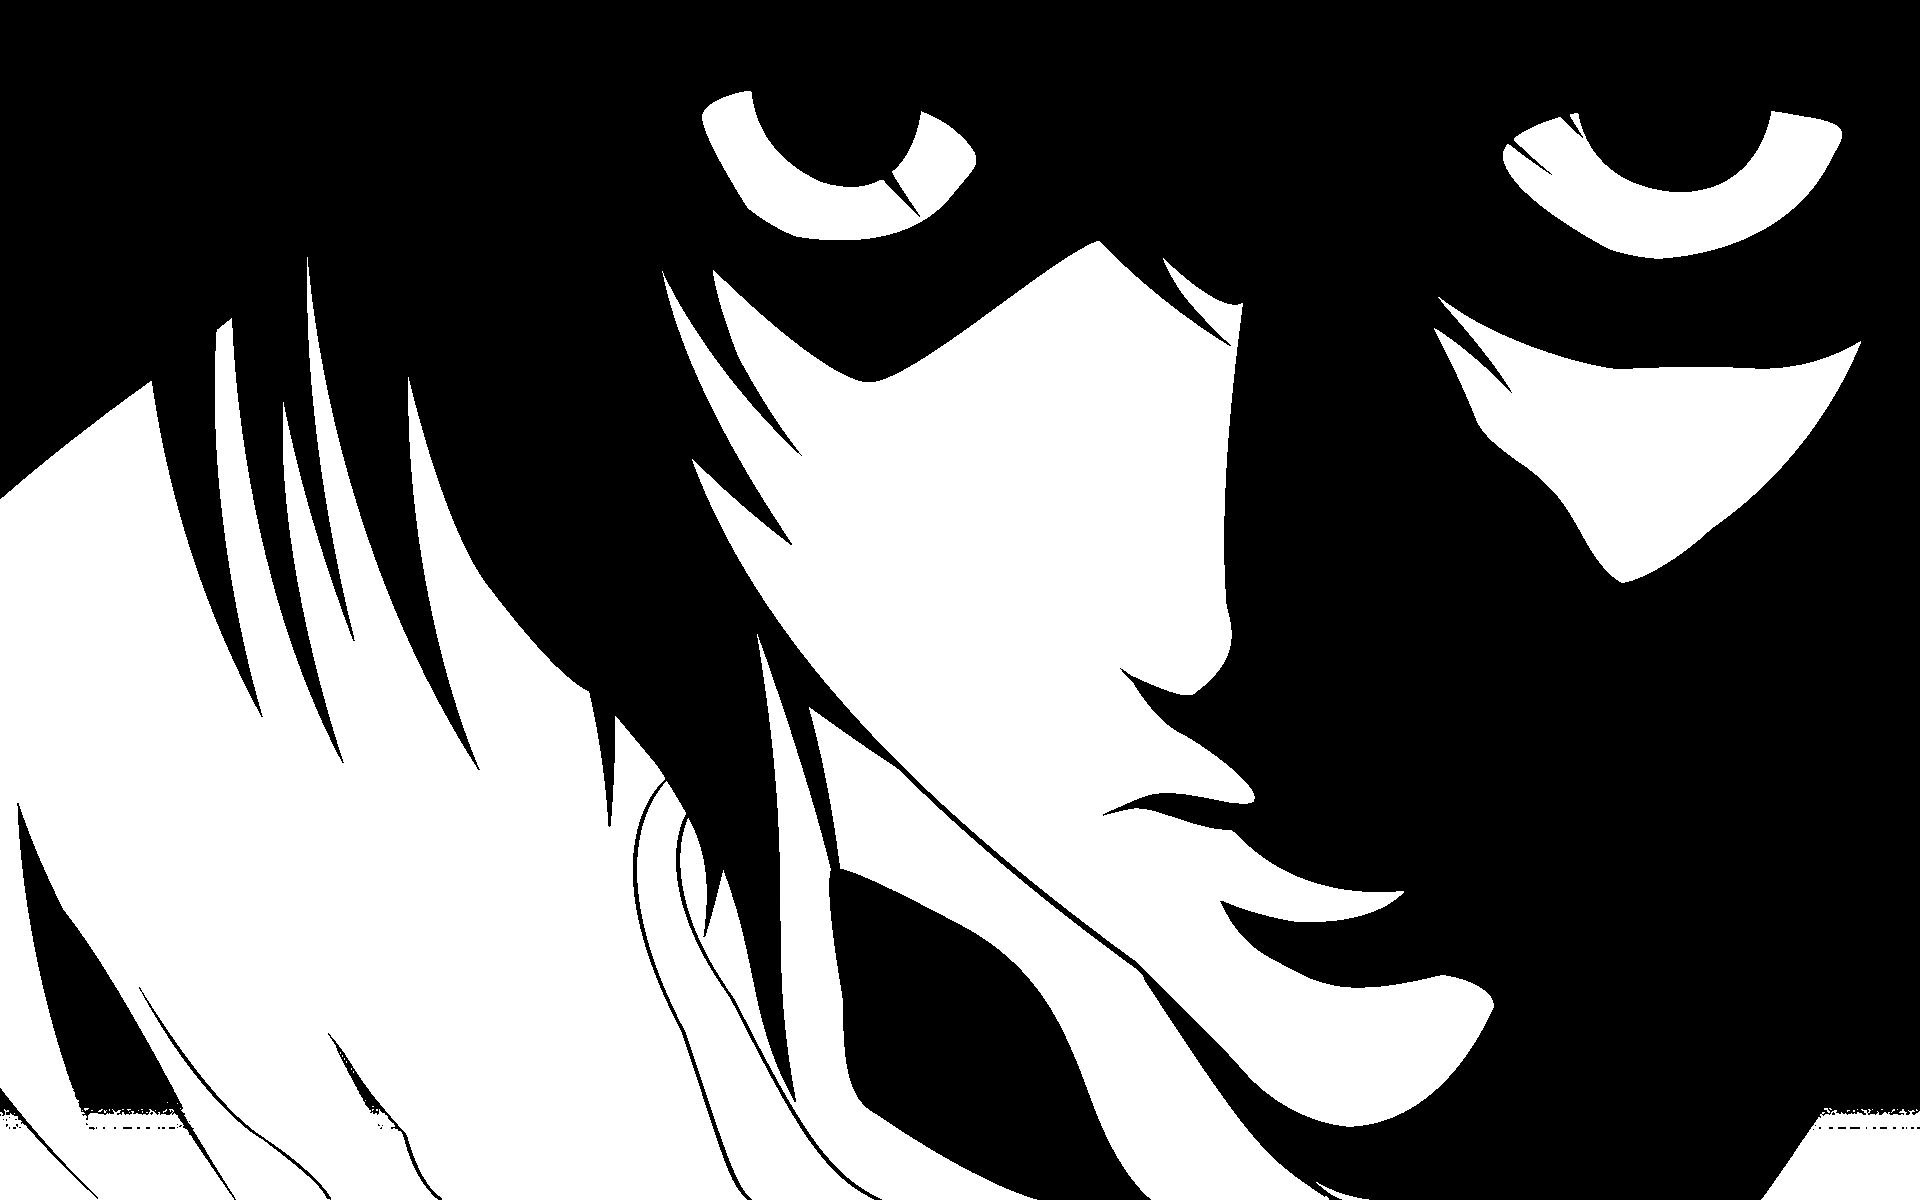 Anime_Wallpaper_Black_White_Love : Death Note Wallpaper Anime Manga in Japan Black and White Wallpapers HD Wide Lugares para ...